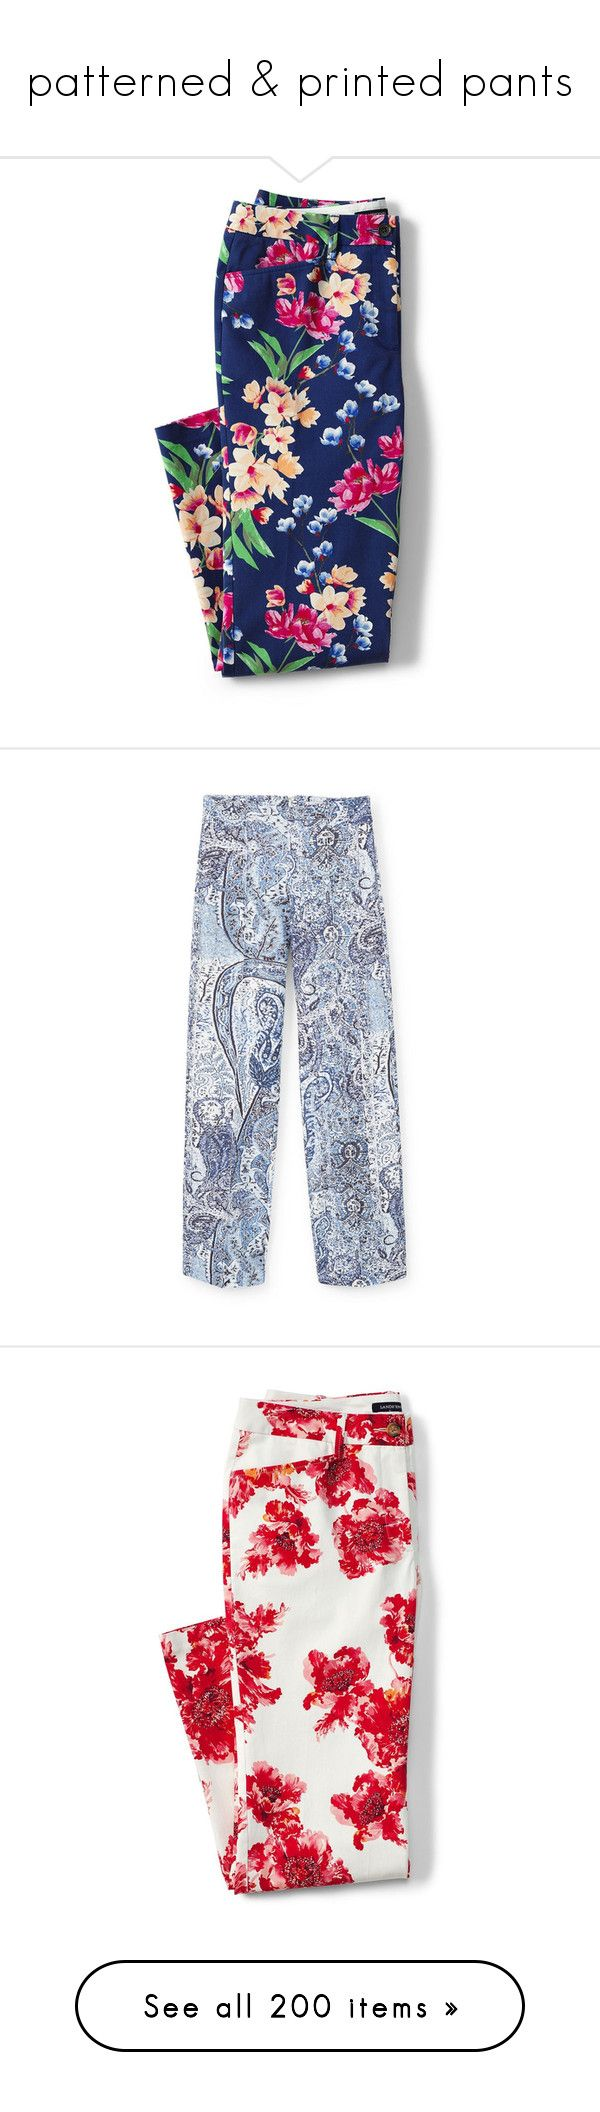 """""""patterned & printed pants"""" by bonadea007 ❤ liked on Polyvore featuring pants, capris, trousers, mid rise pants, cropped pants, stretch trousers, blue pants, petite trousers, print pants and patterned flare pants"""